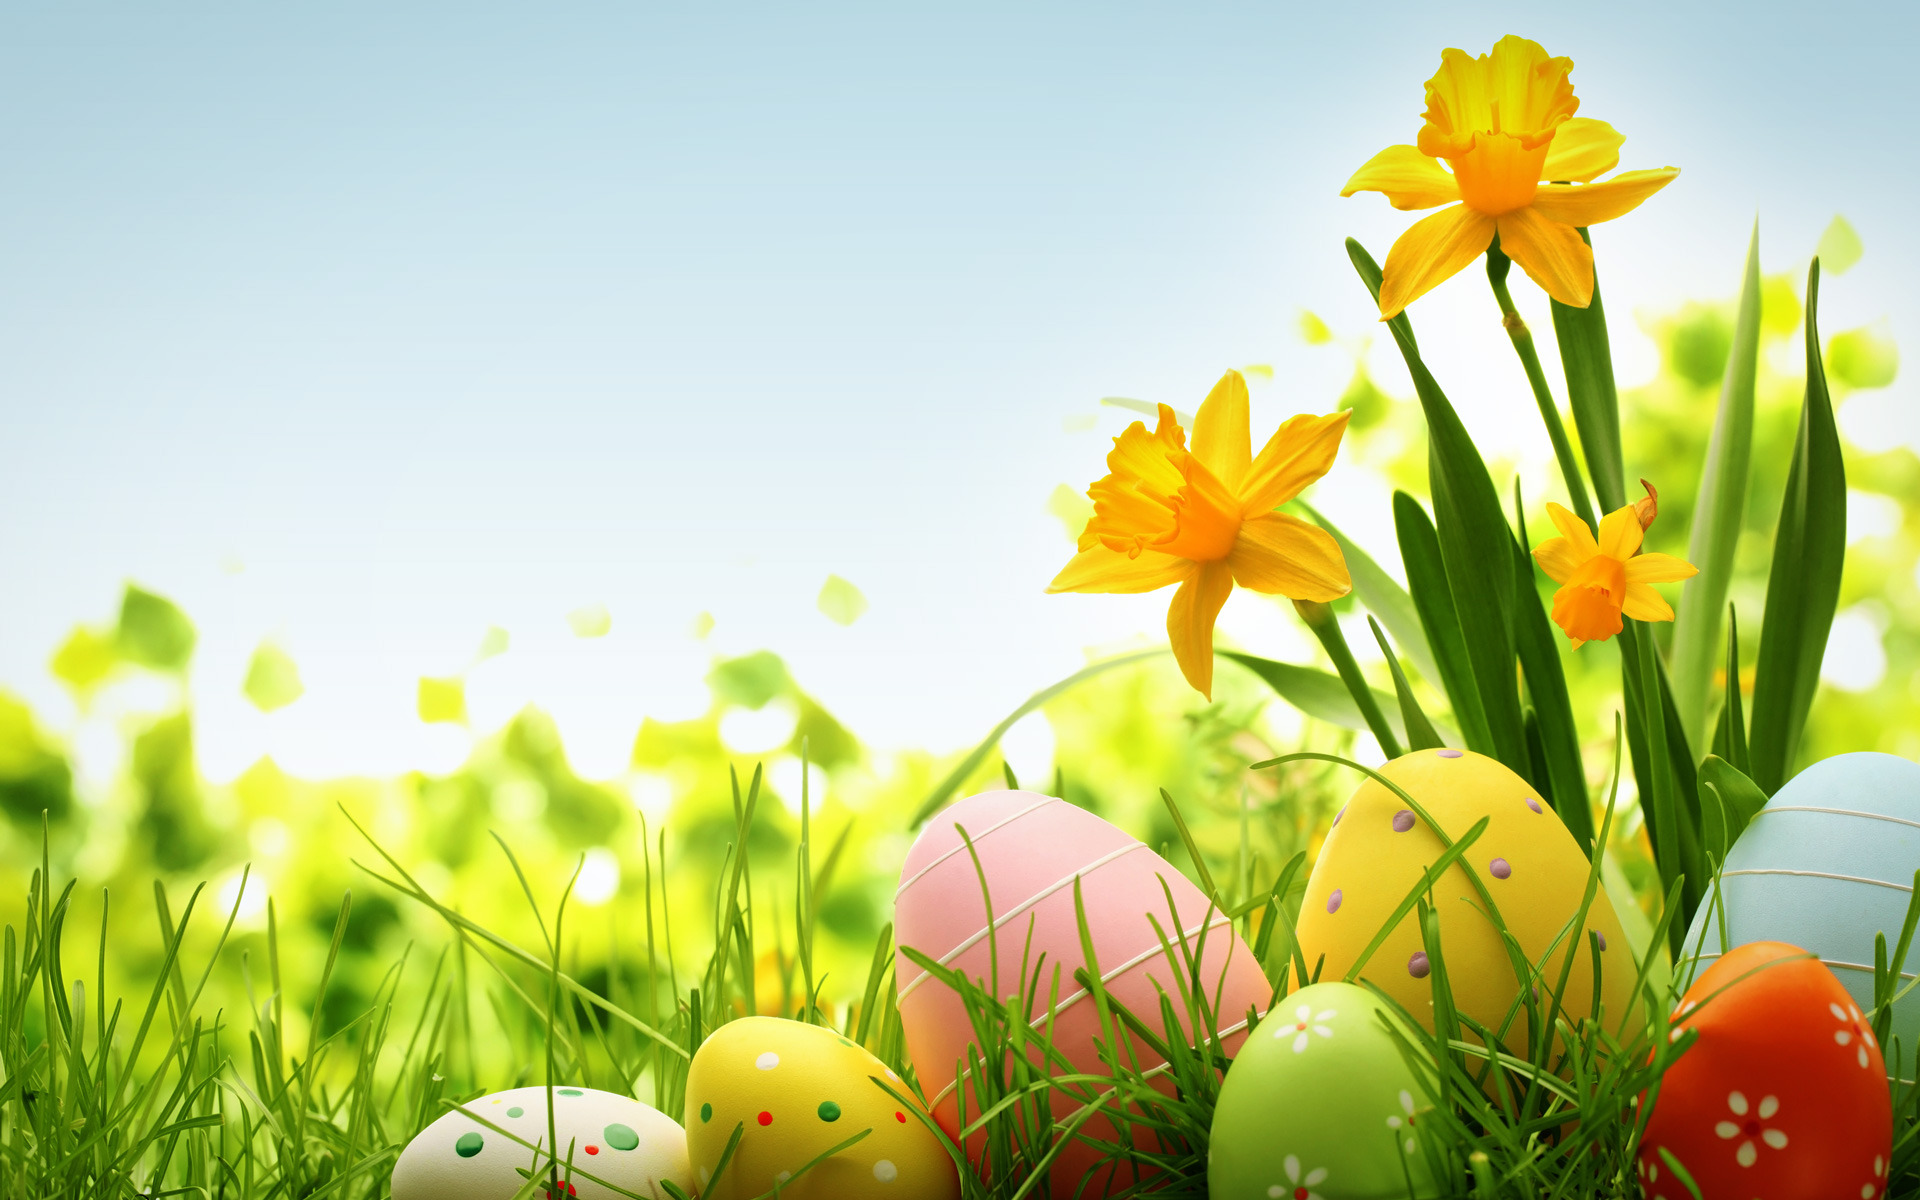 colorful-easter-eggs-holiday-hd-wallpaper-1920x1200-10811_DNcIFEF